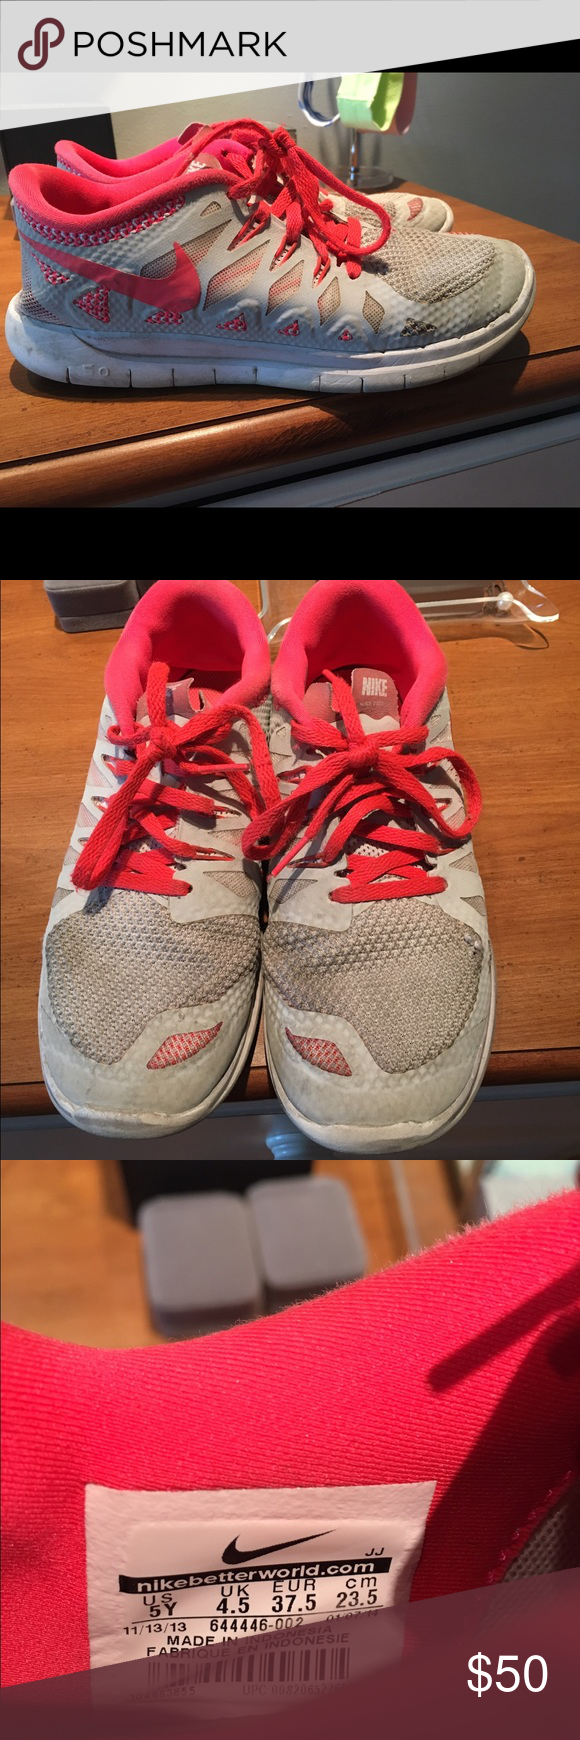 ... Force 1 Unisex Youth pre order  004f0 8c525 Nike tennis shoes. Gently  used. Perfect condition. Comfortable tennis shoes. 66156c1aa